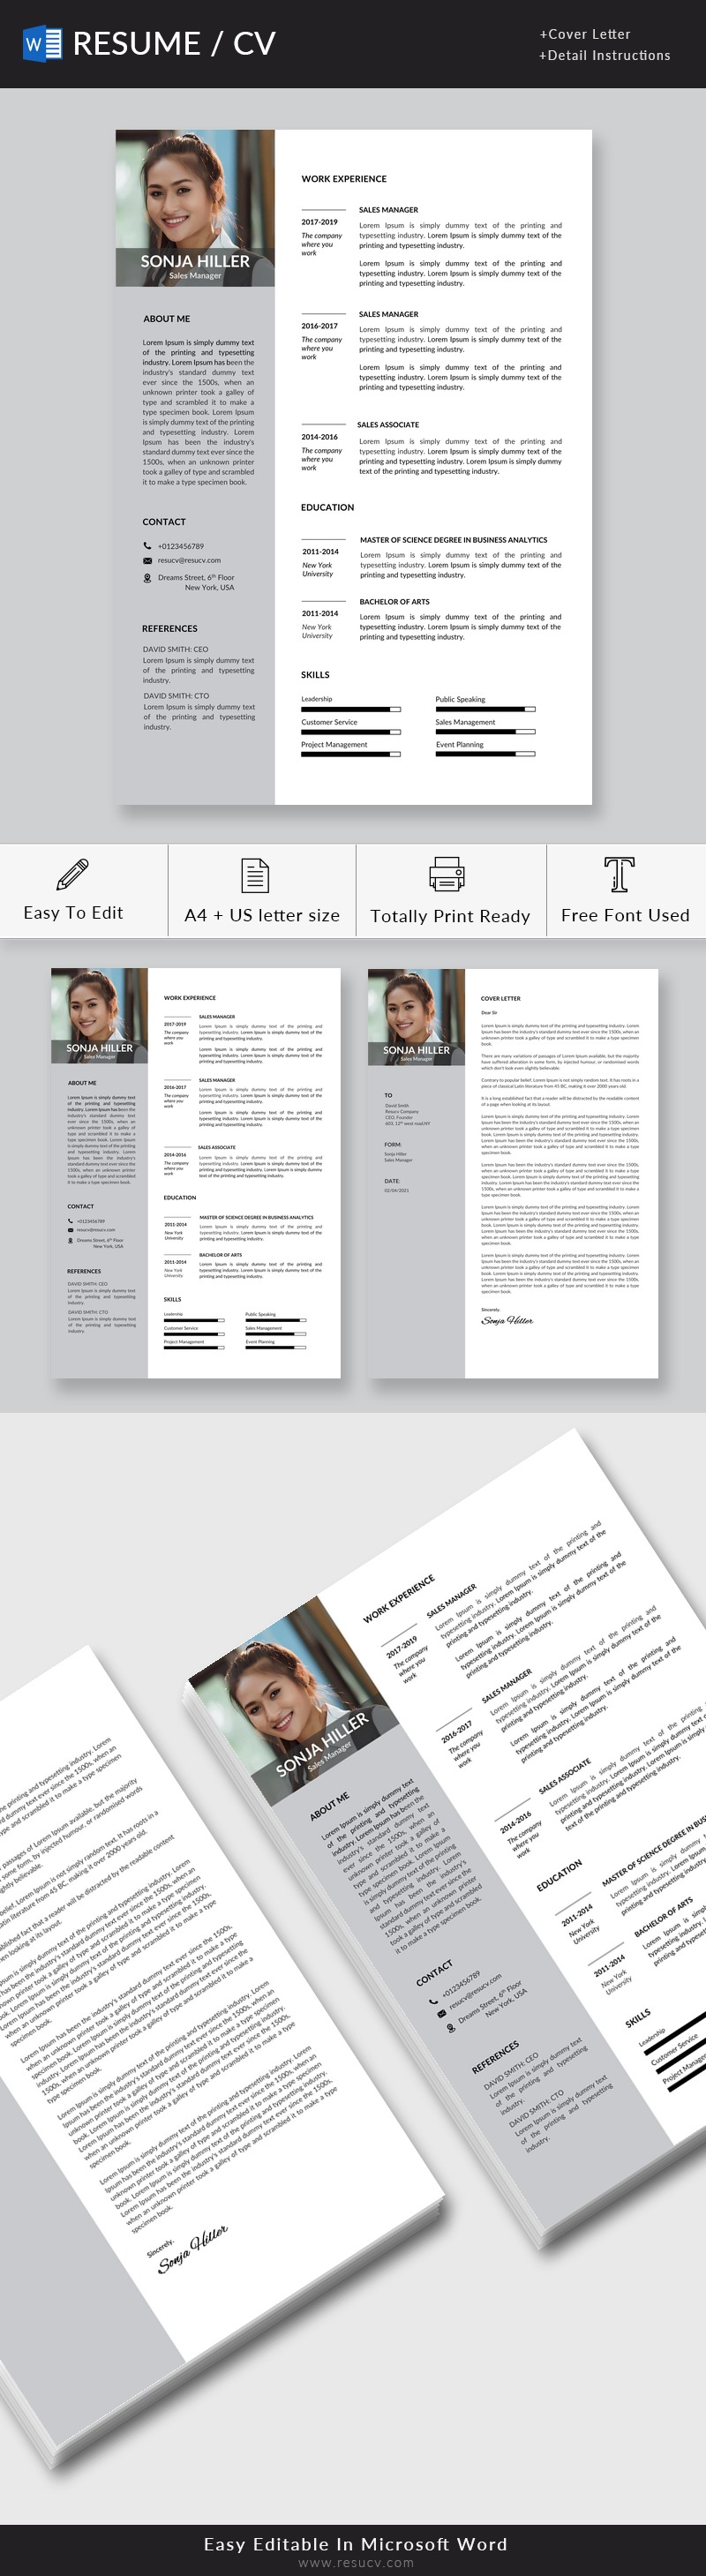 Region Sales Manager Resume Template   Sales Manager Resume Sample   Market Sales Manager Resume Download